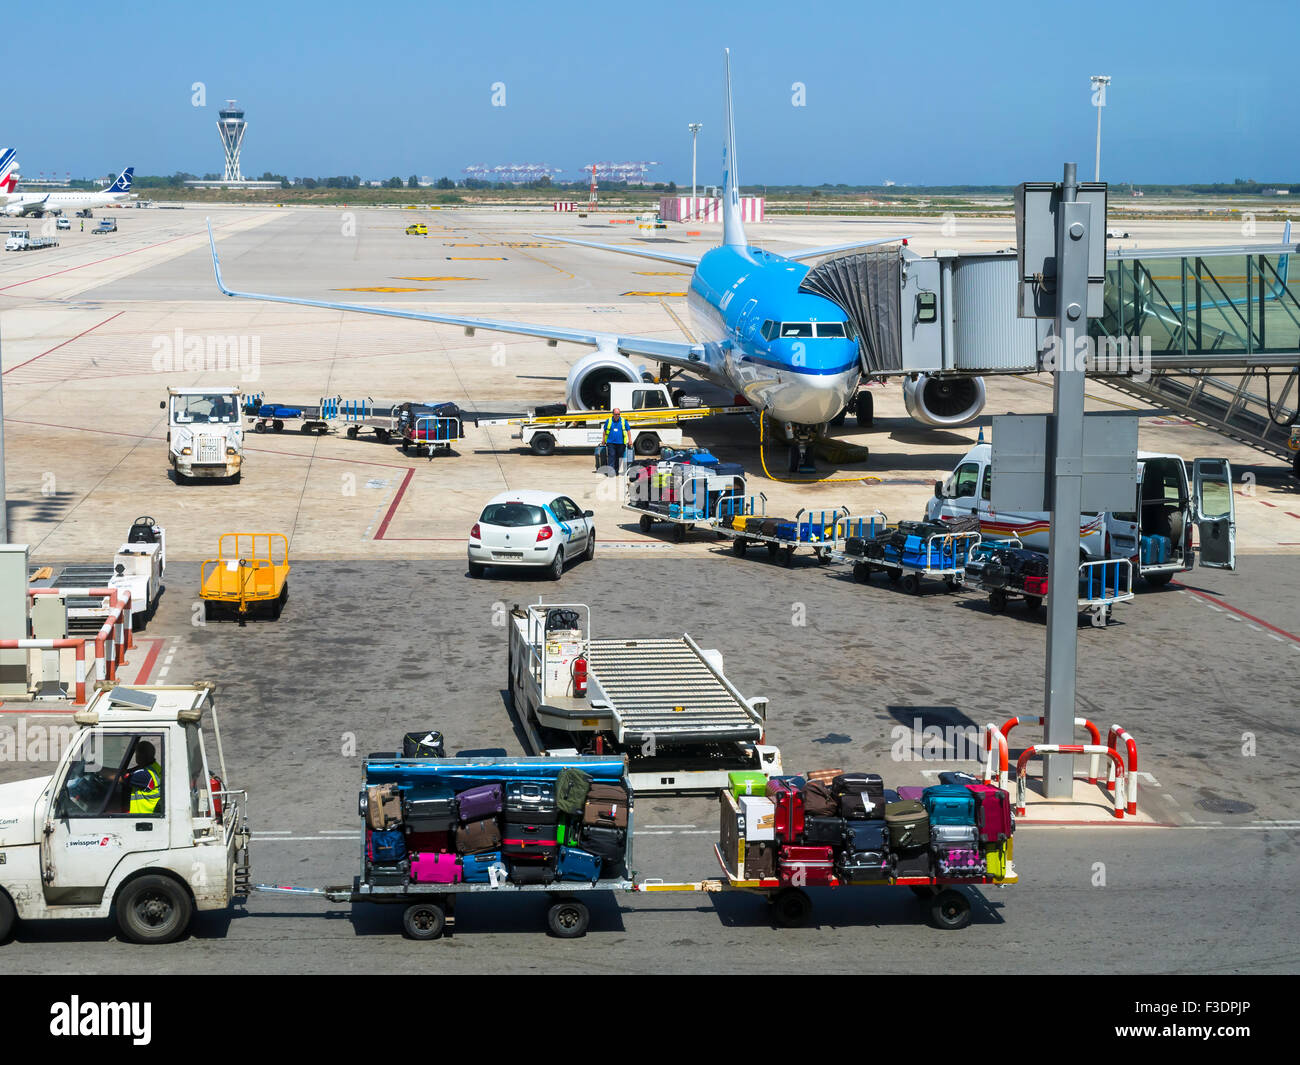 KLM aircraft at the terminal with luggage trollies, Barcelona airport, Spain - Stock Image